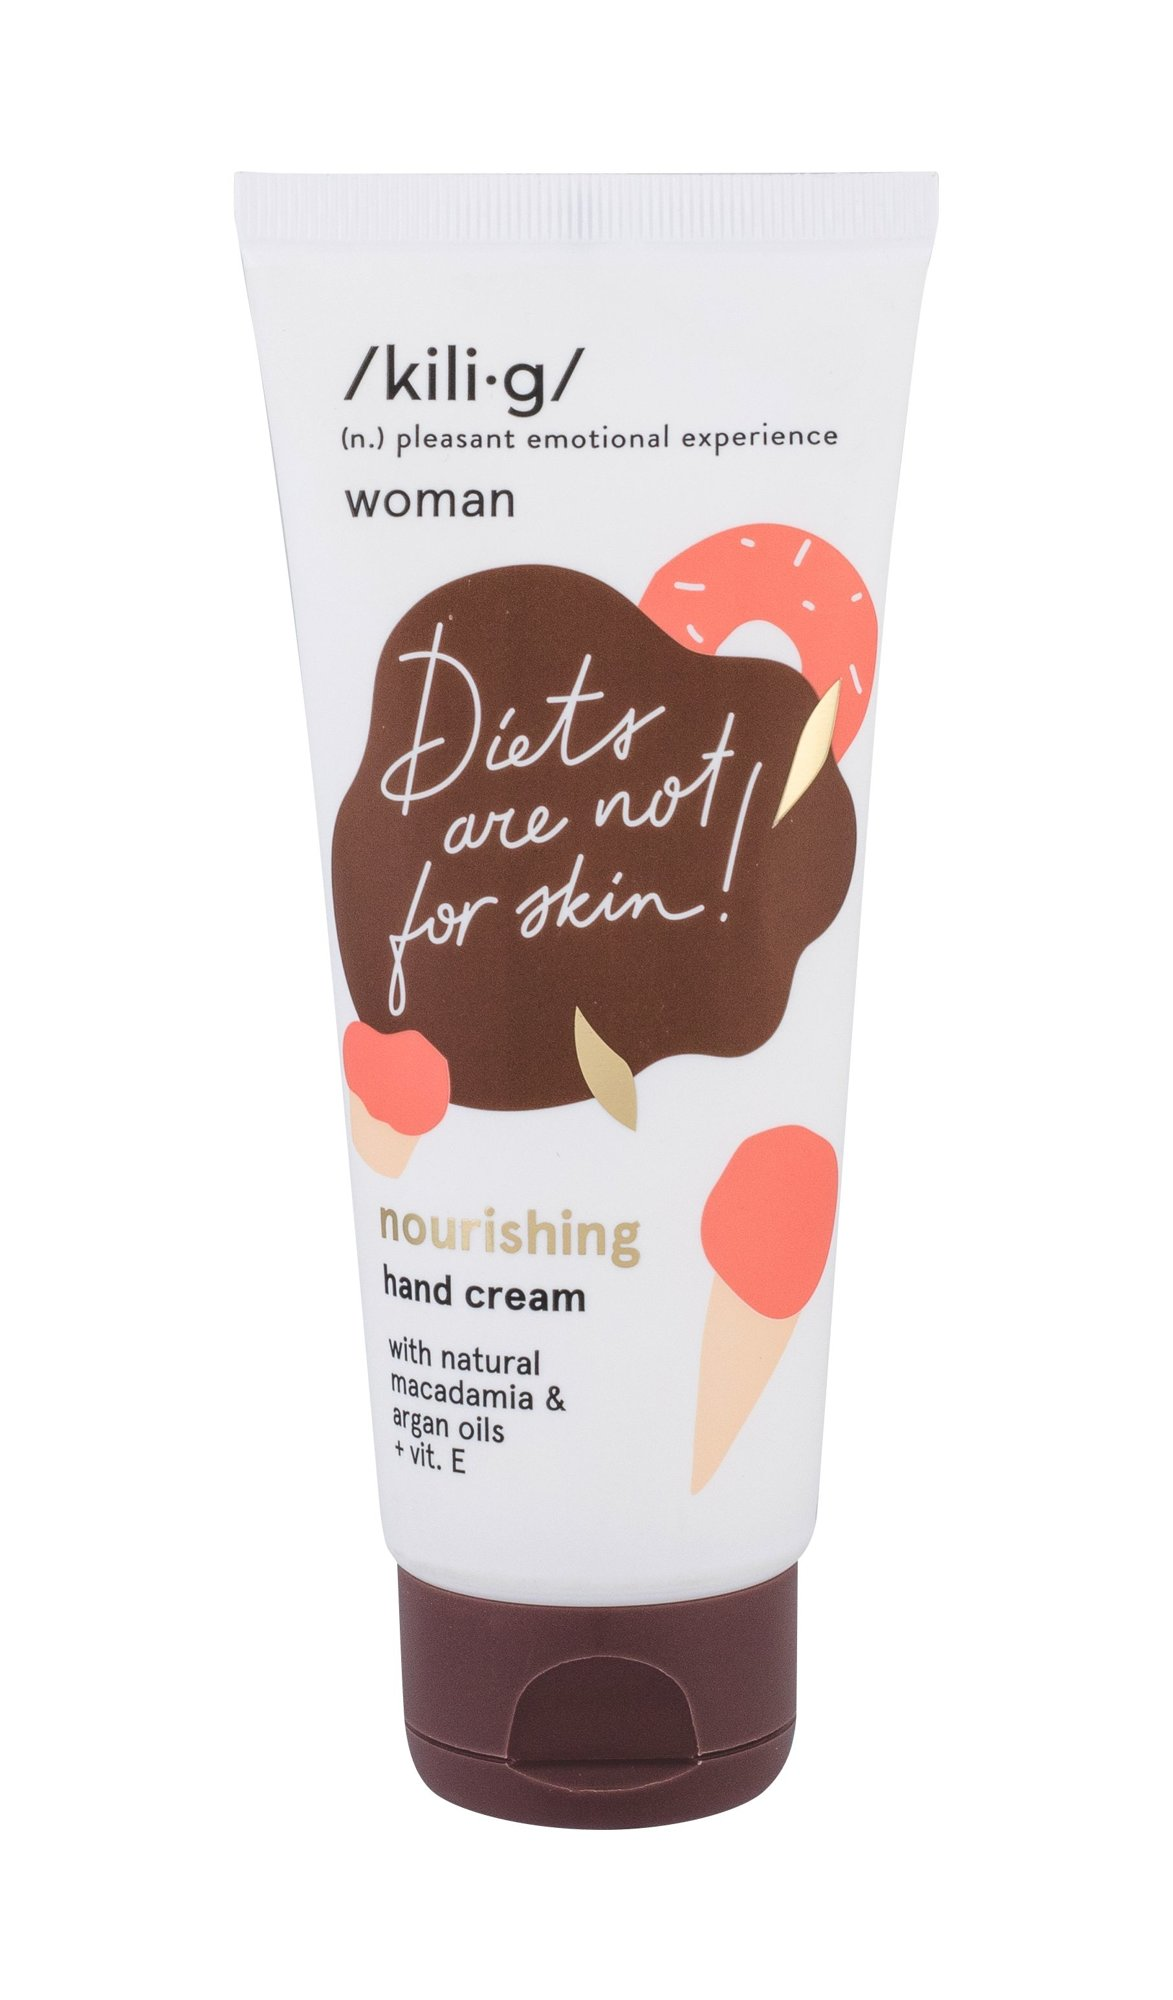 kili·g woman nourishing Hand Cream 75ml